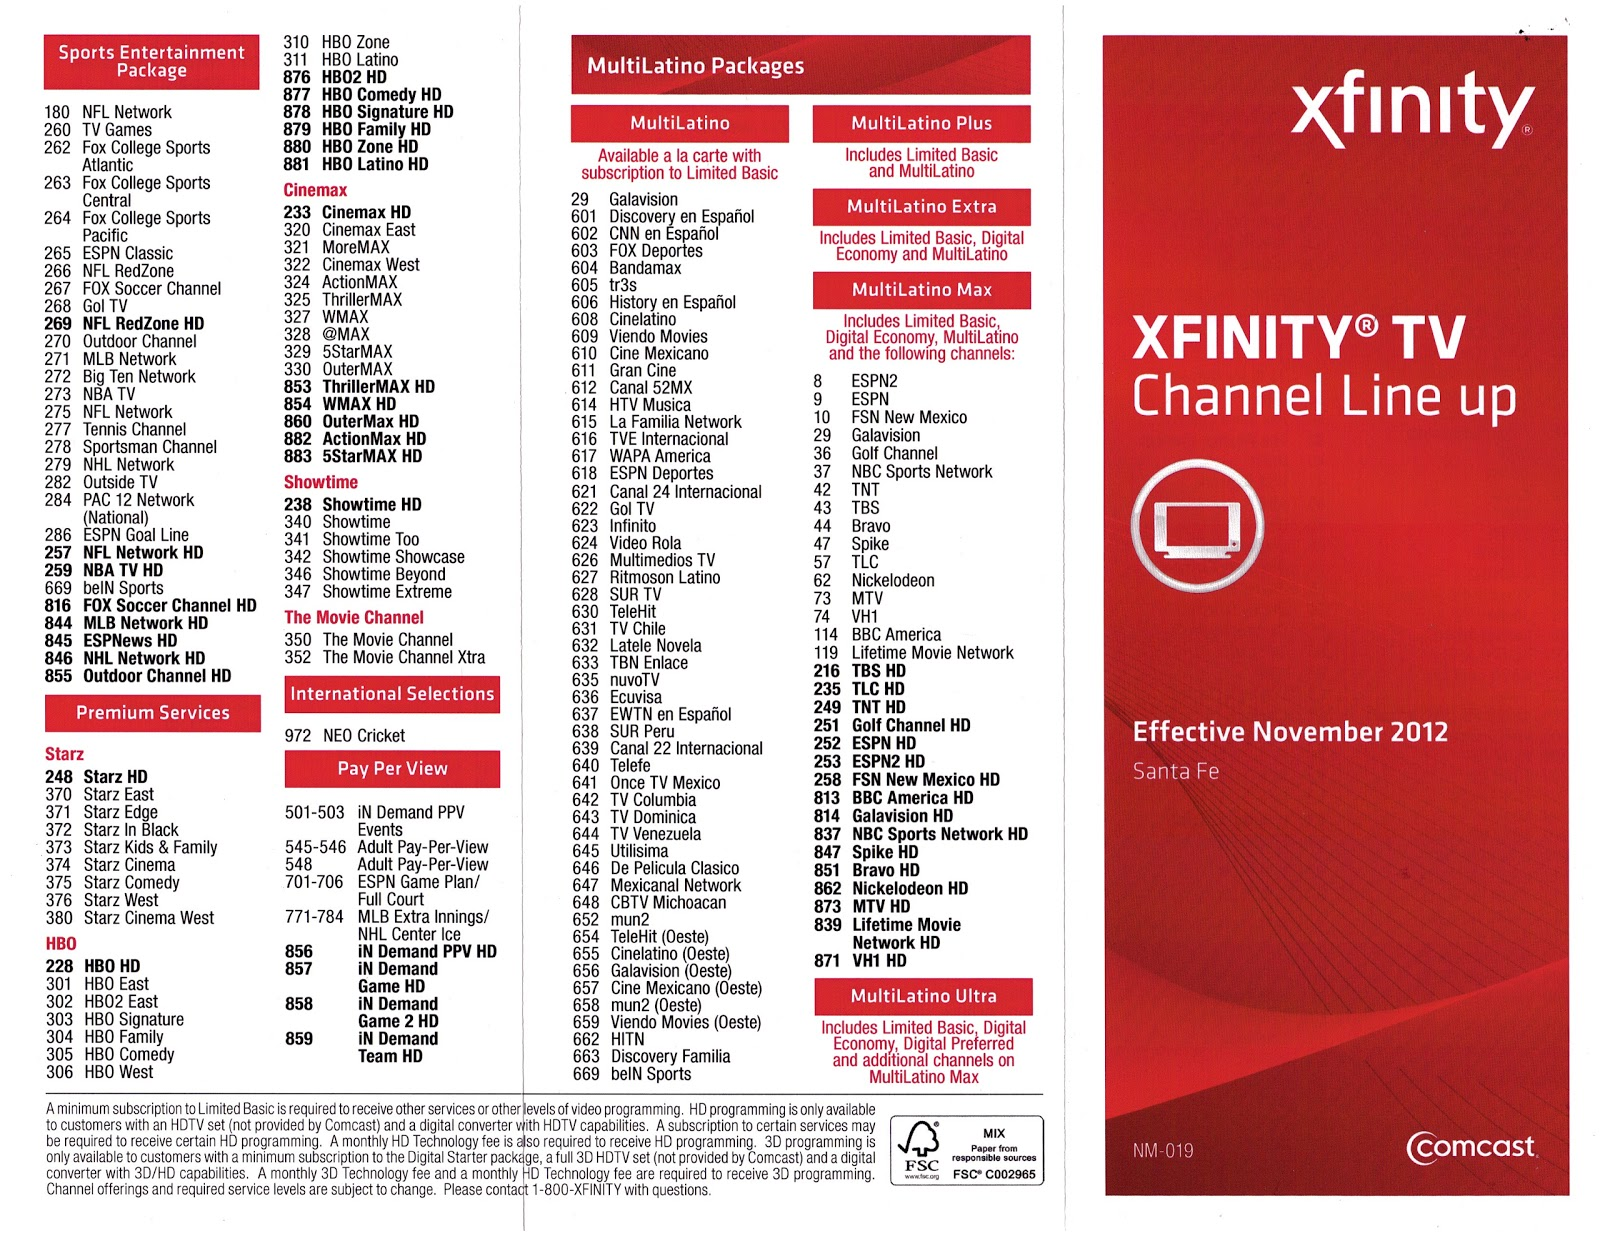 Diy Network Xfinity Channel